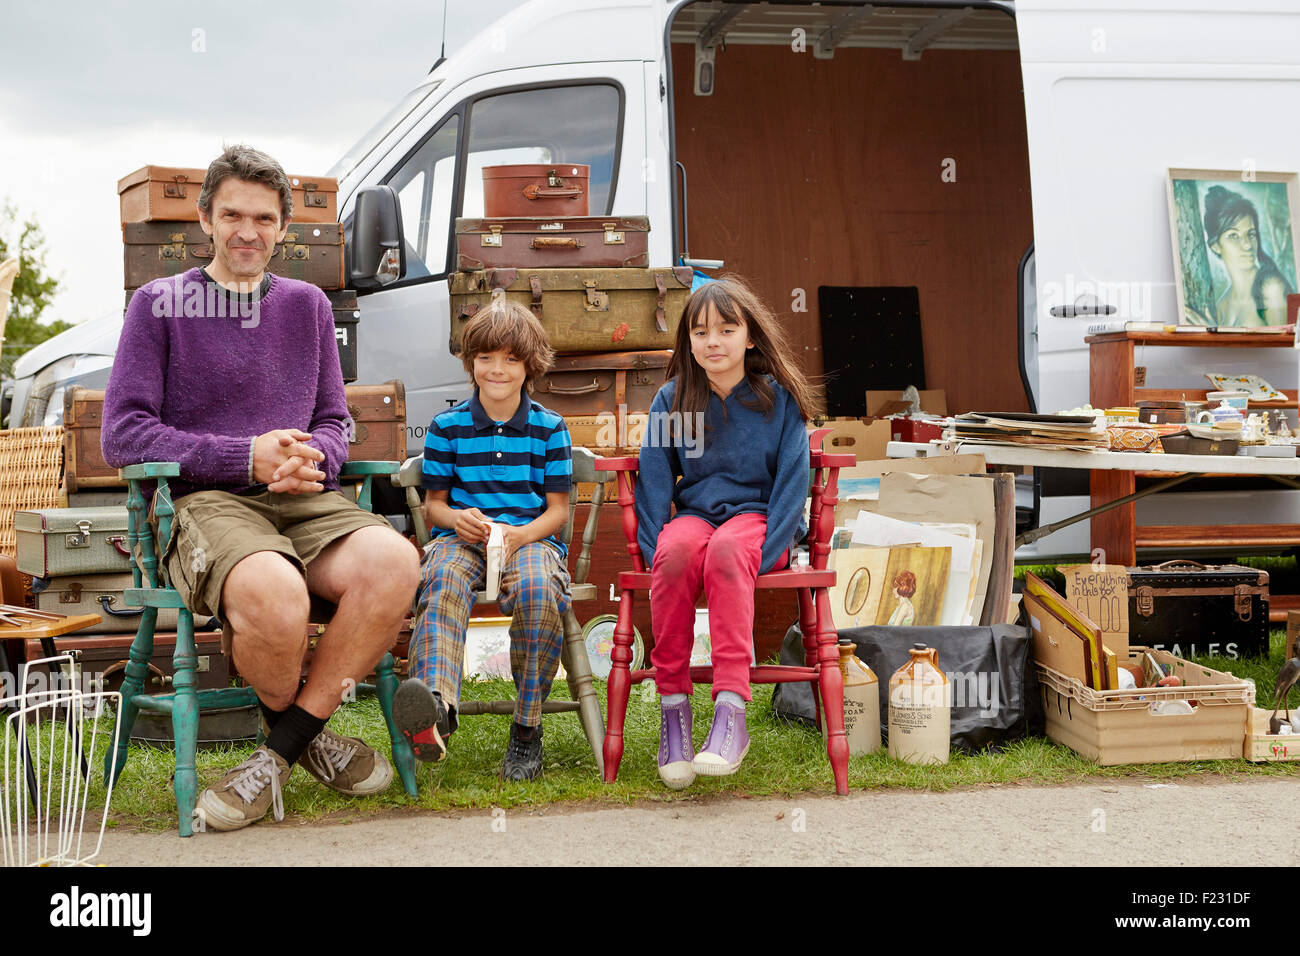 Man, boy and girl with trunks and baskets and furniture at flea market. - Stock Image